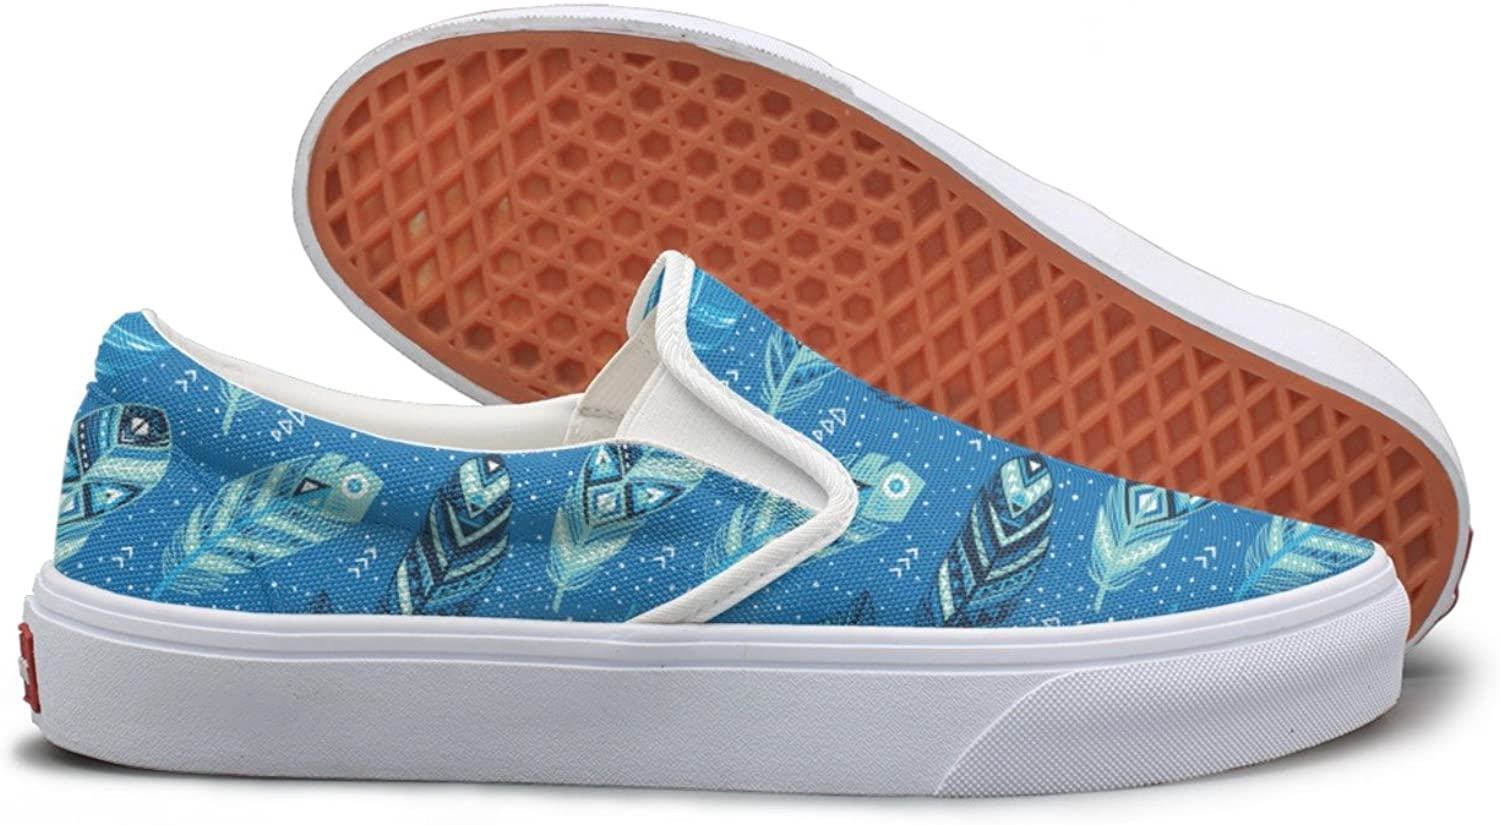 Tribal bluee Feathers School Sneakers For Women